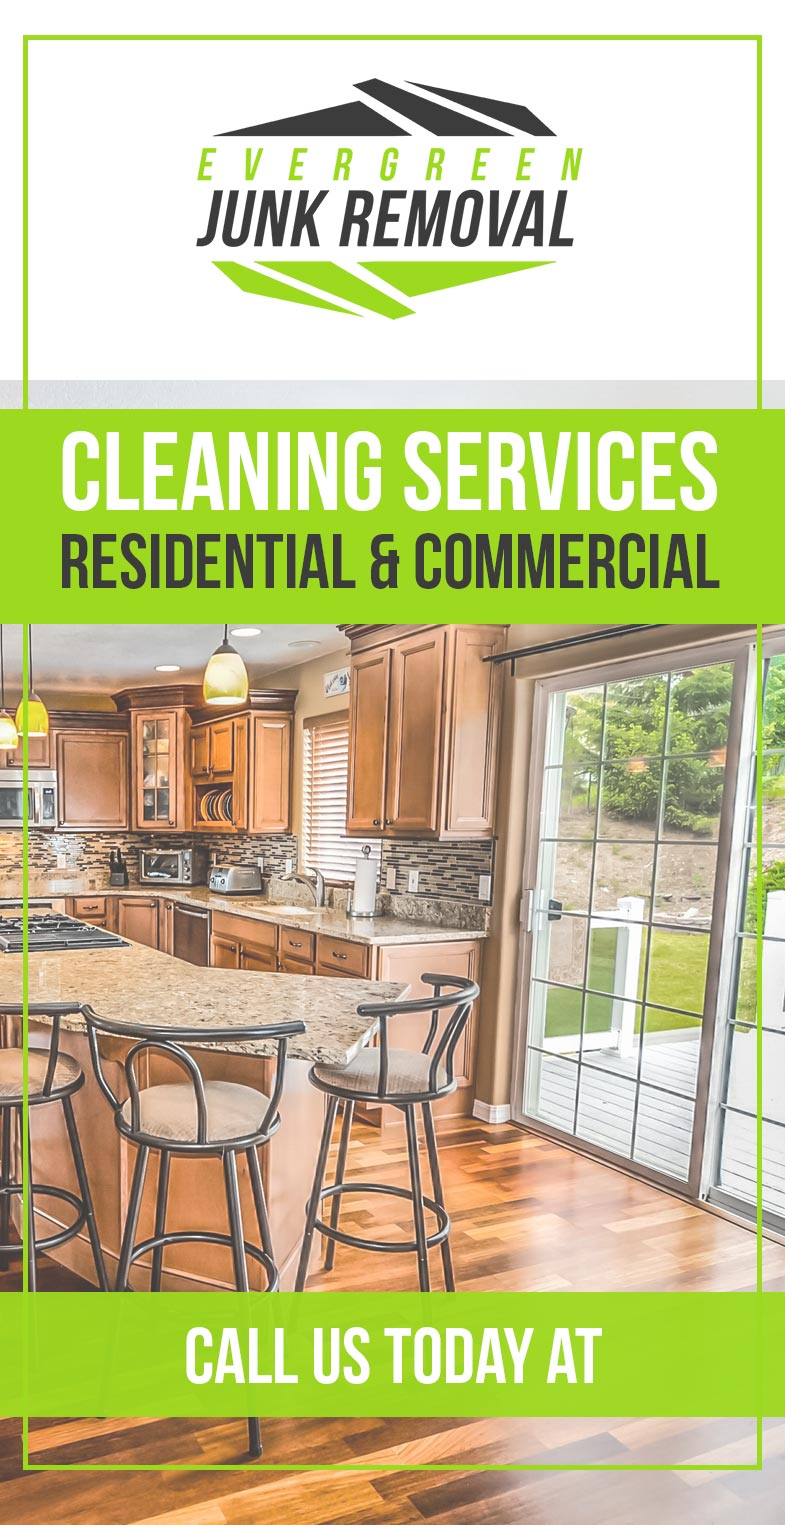 Broadview Park Maid Services